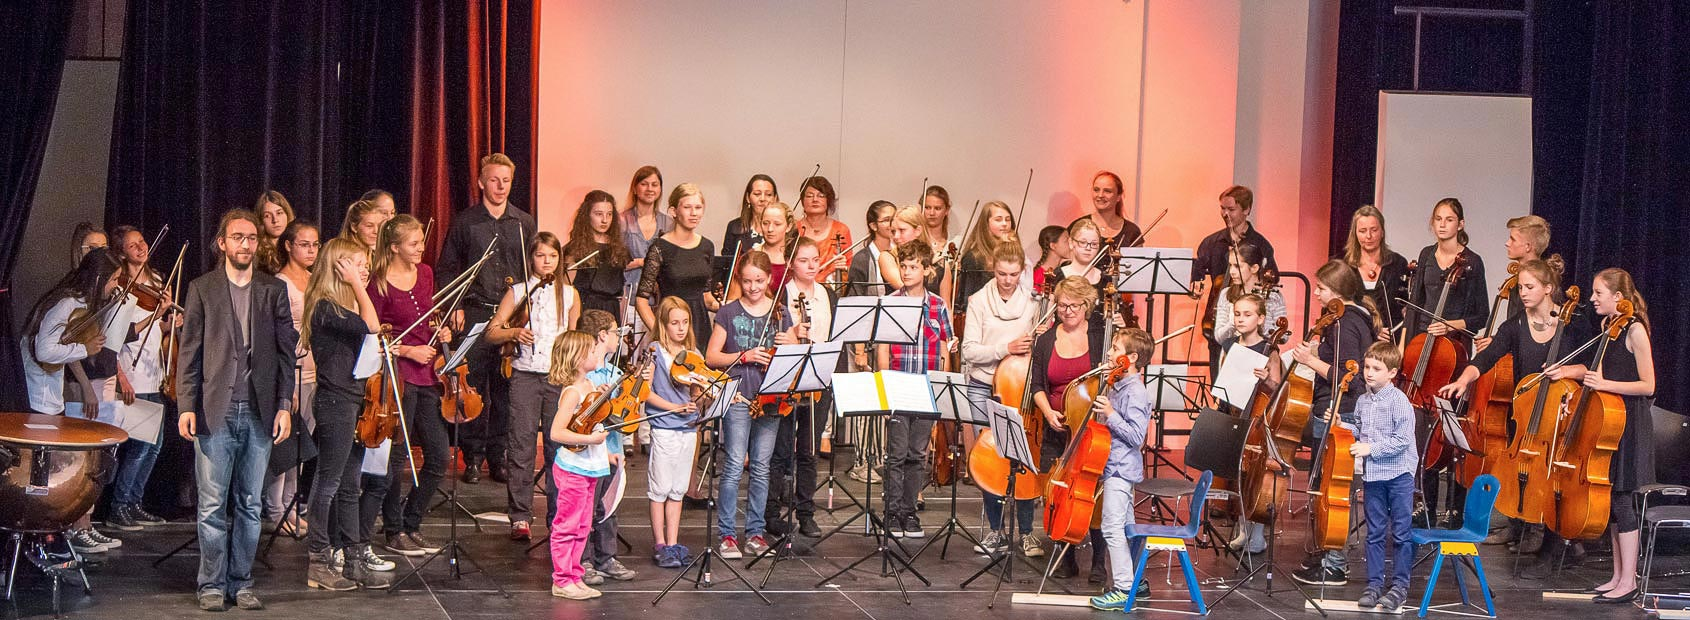 musikschule-vhs-orchester